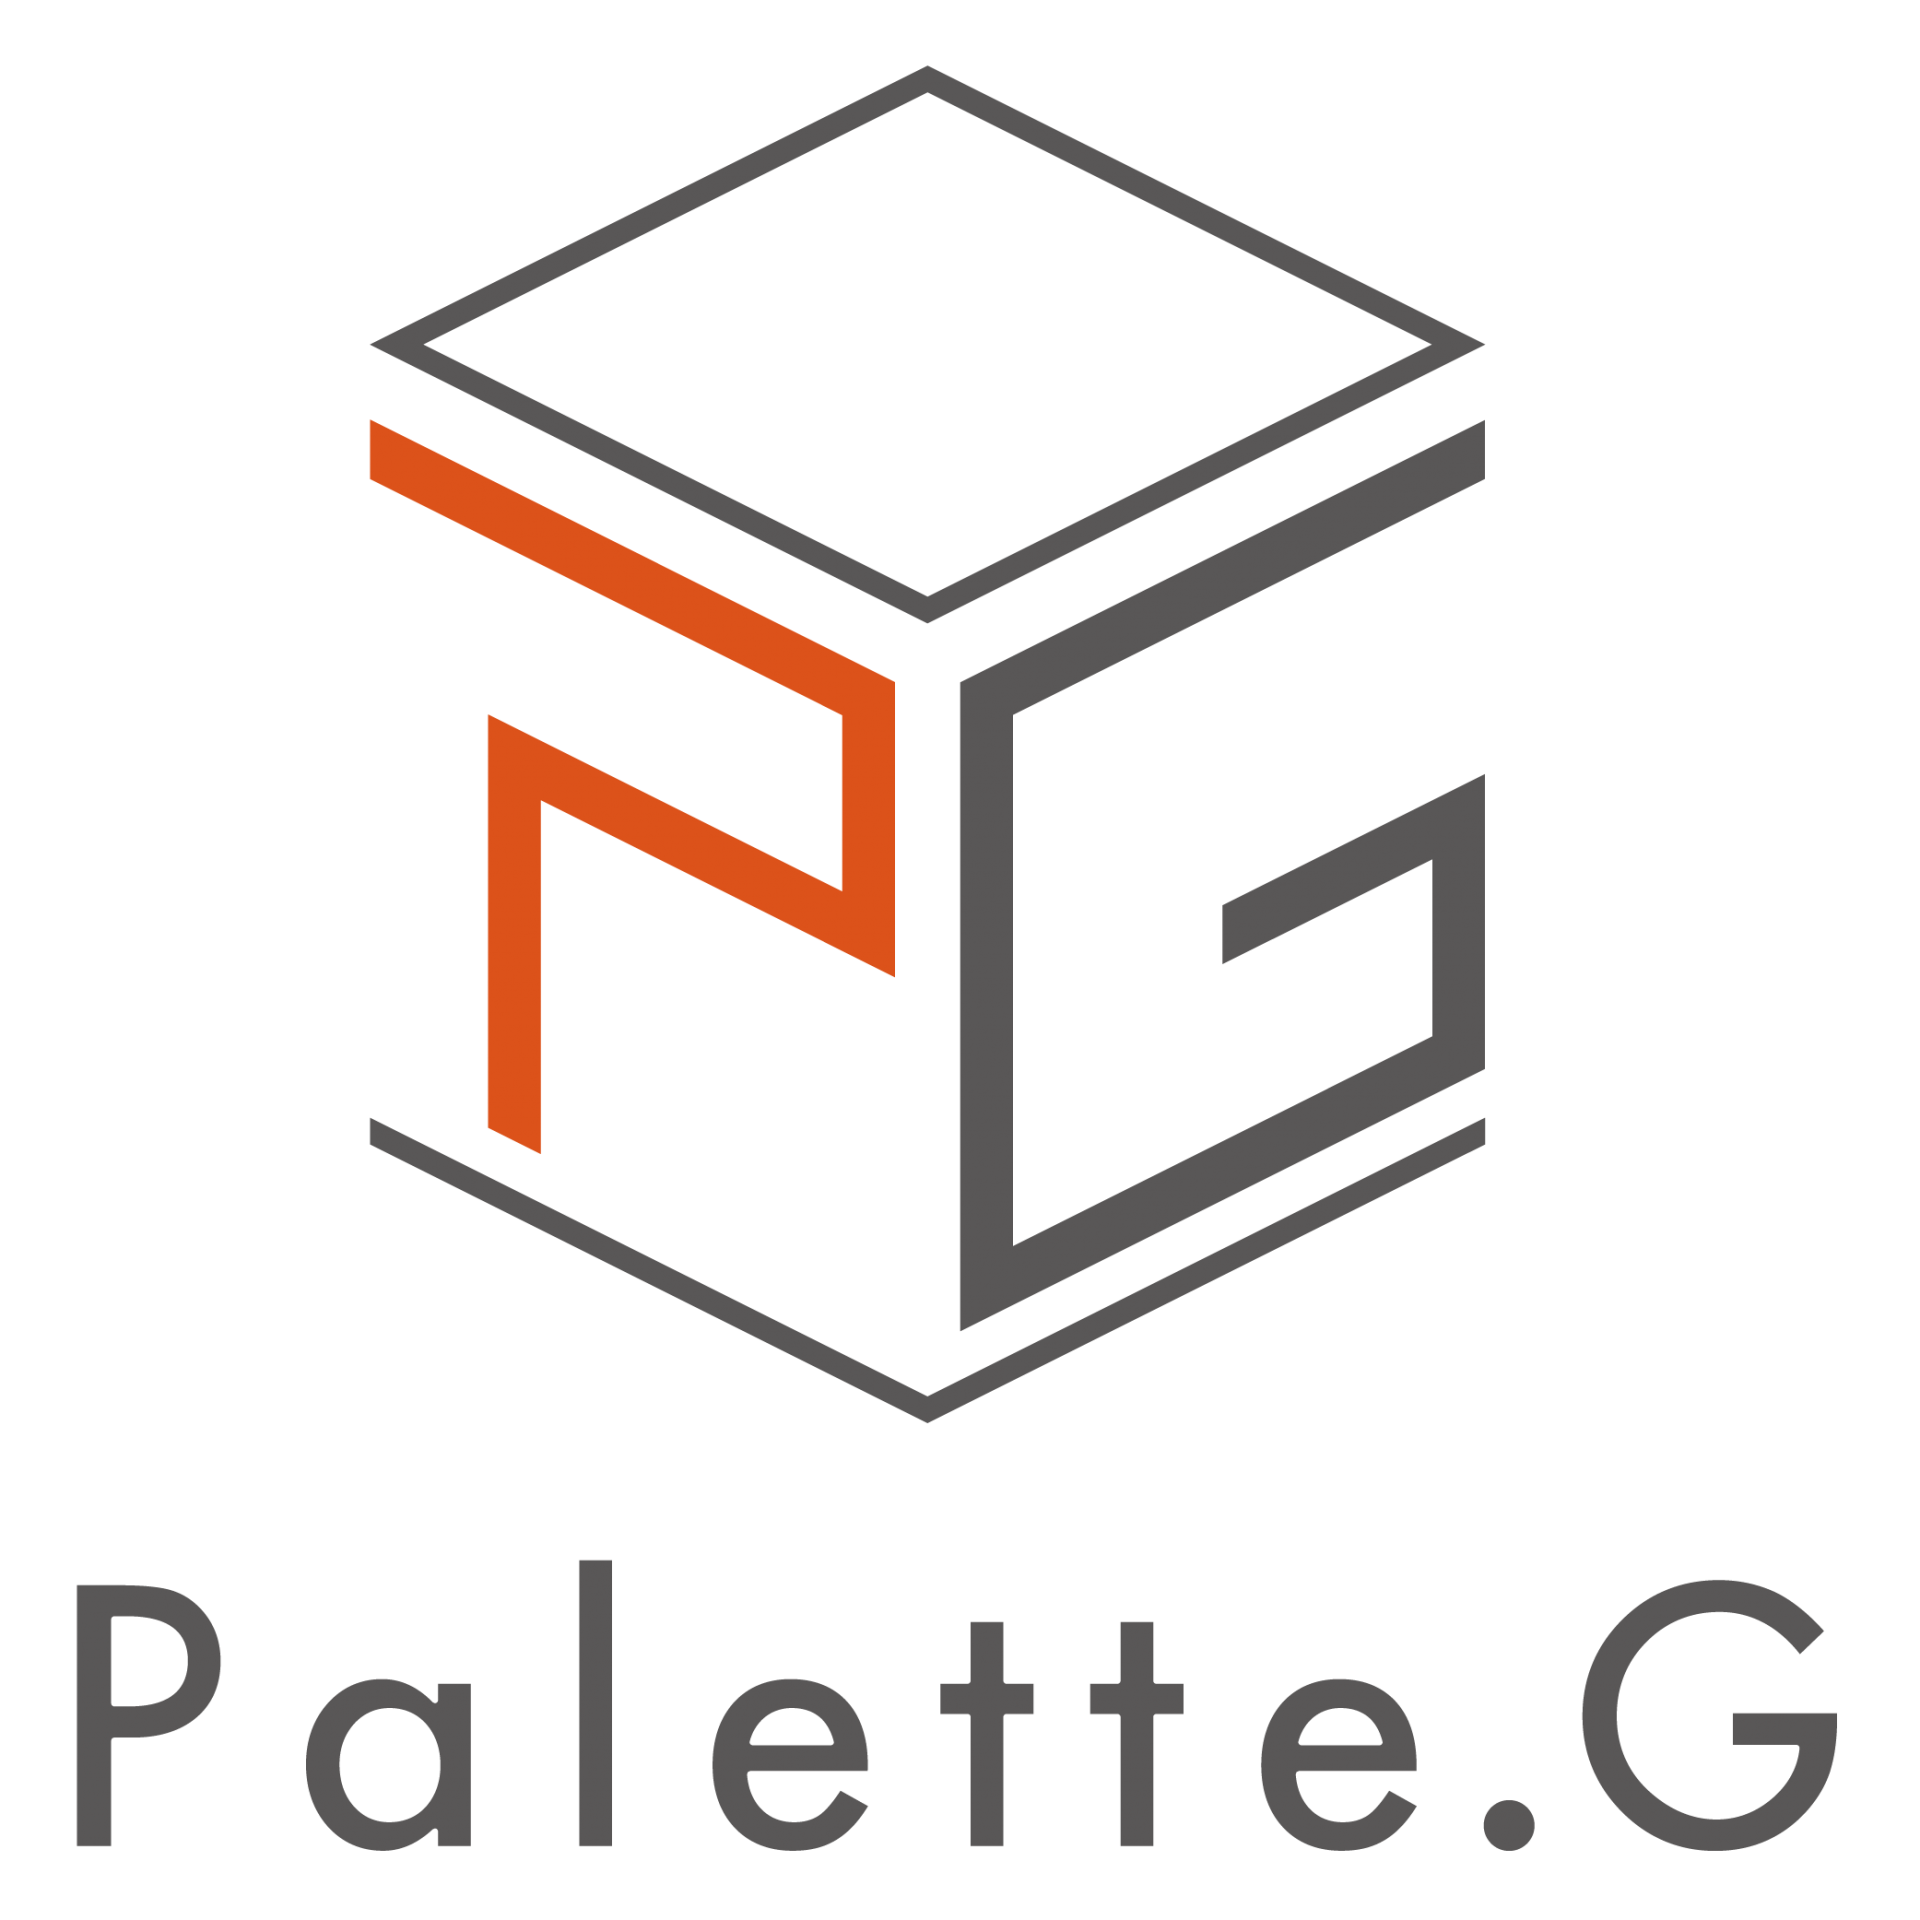 Palette Group